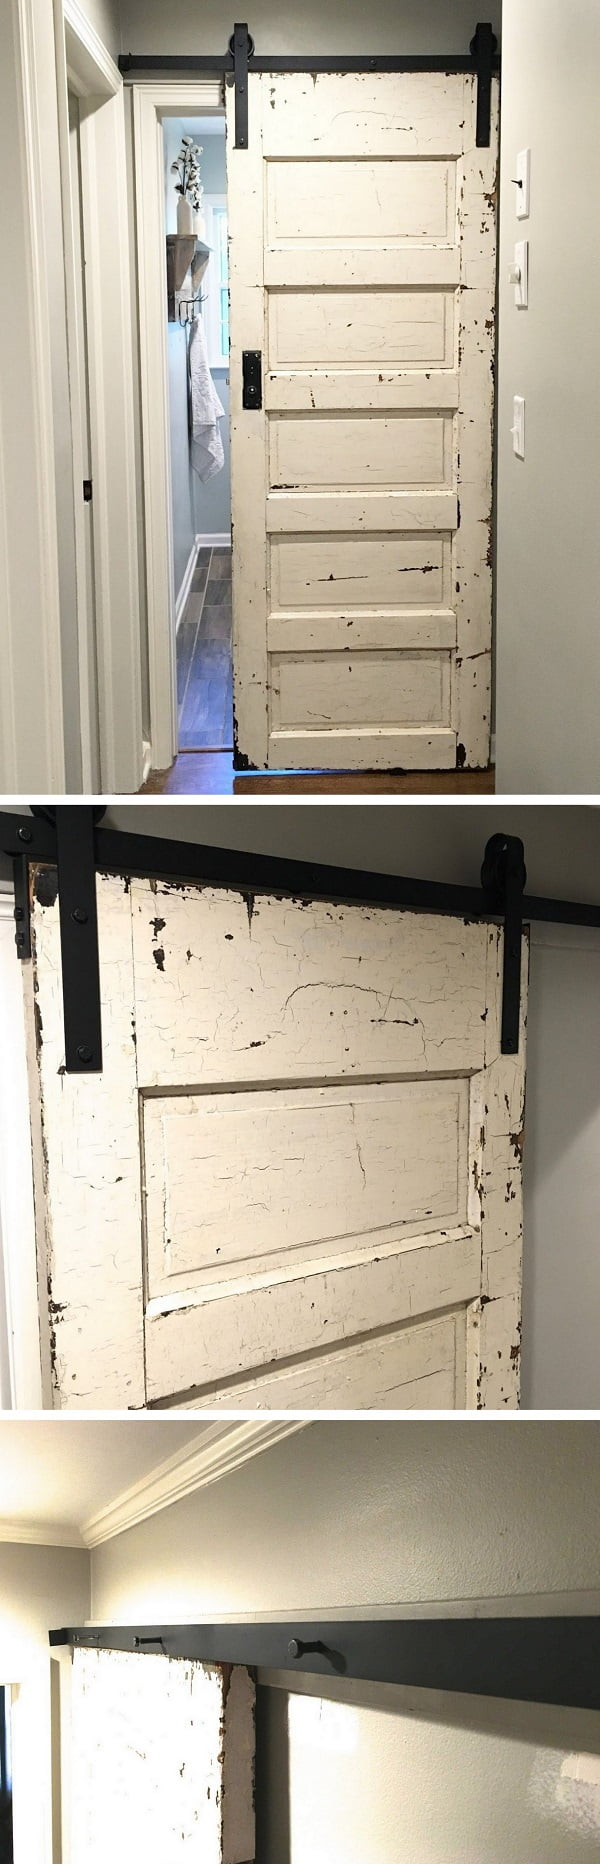 How to make DIY track door